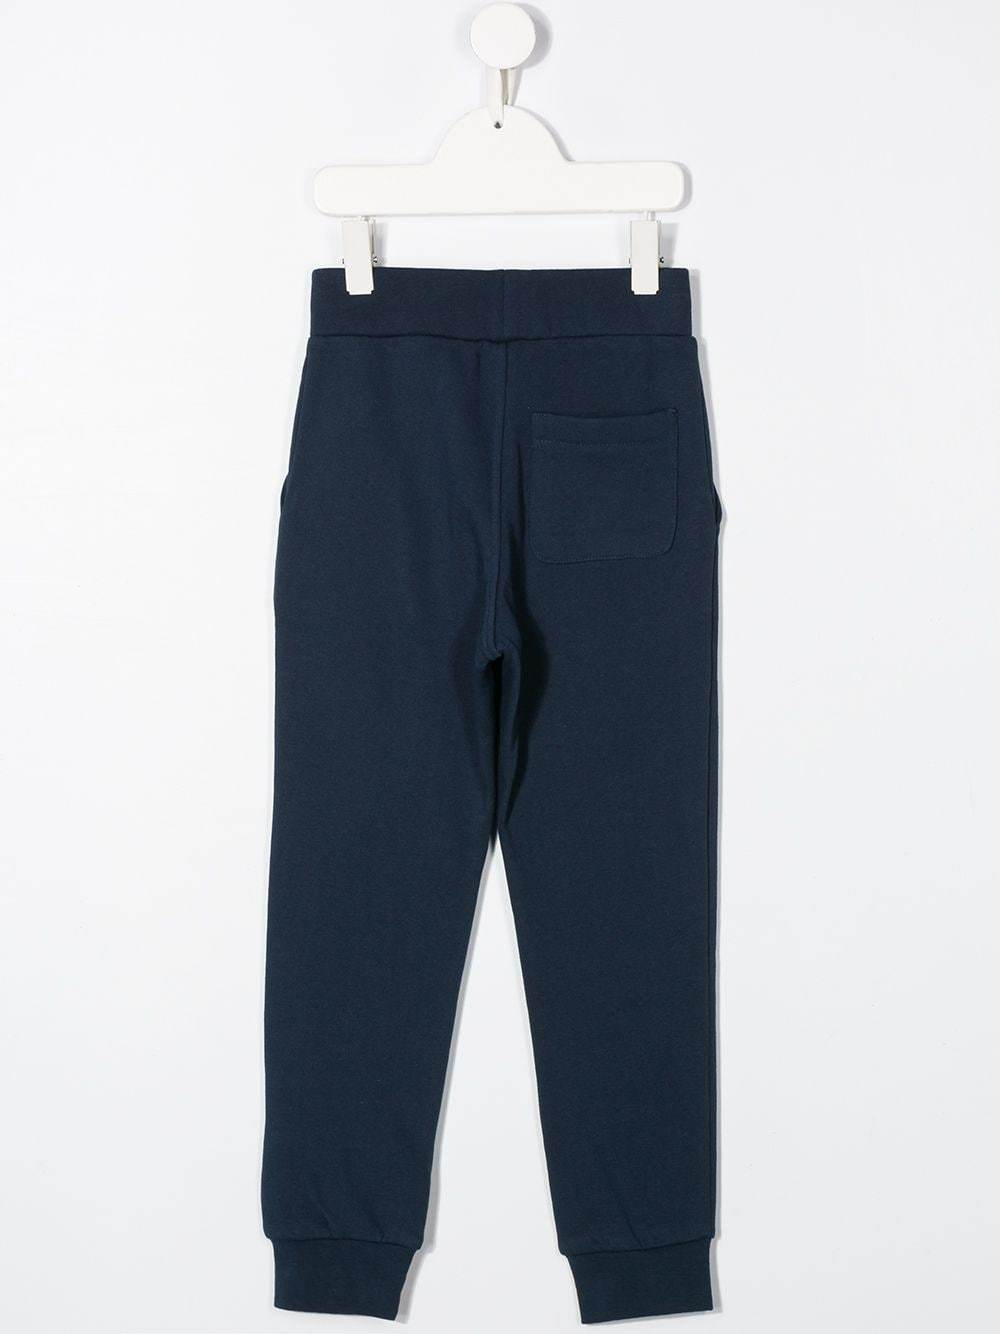 LANVIN ENFANT embroidered logo track trousers